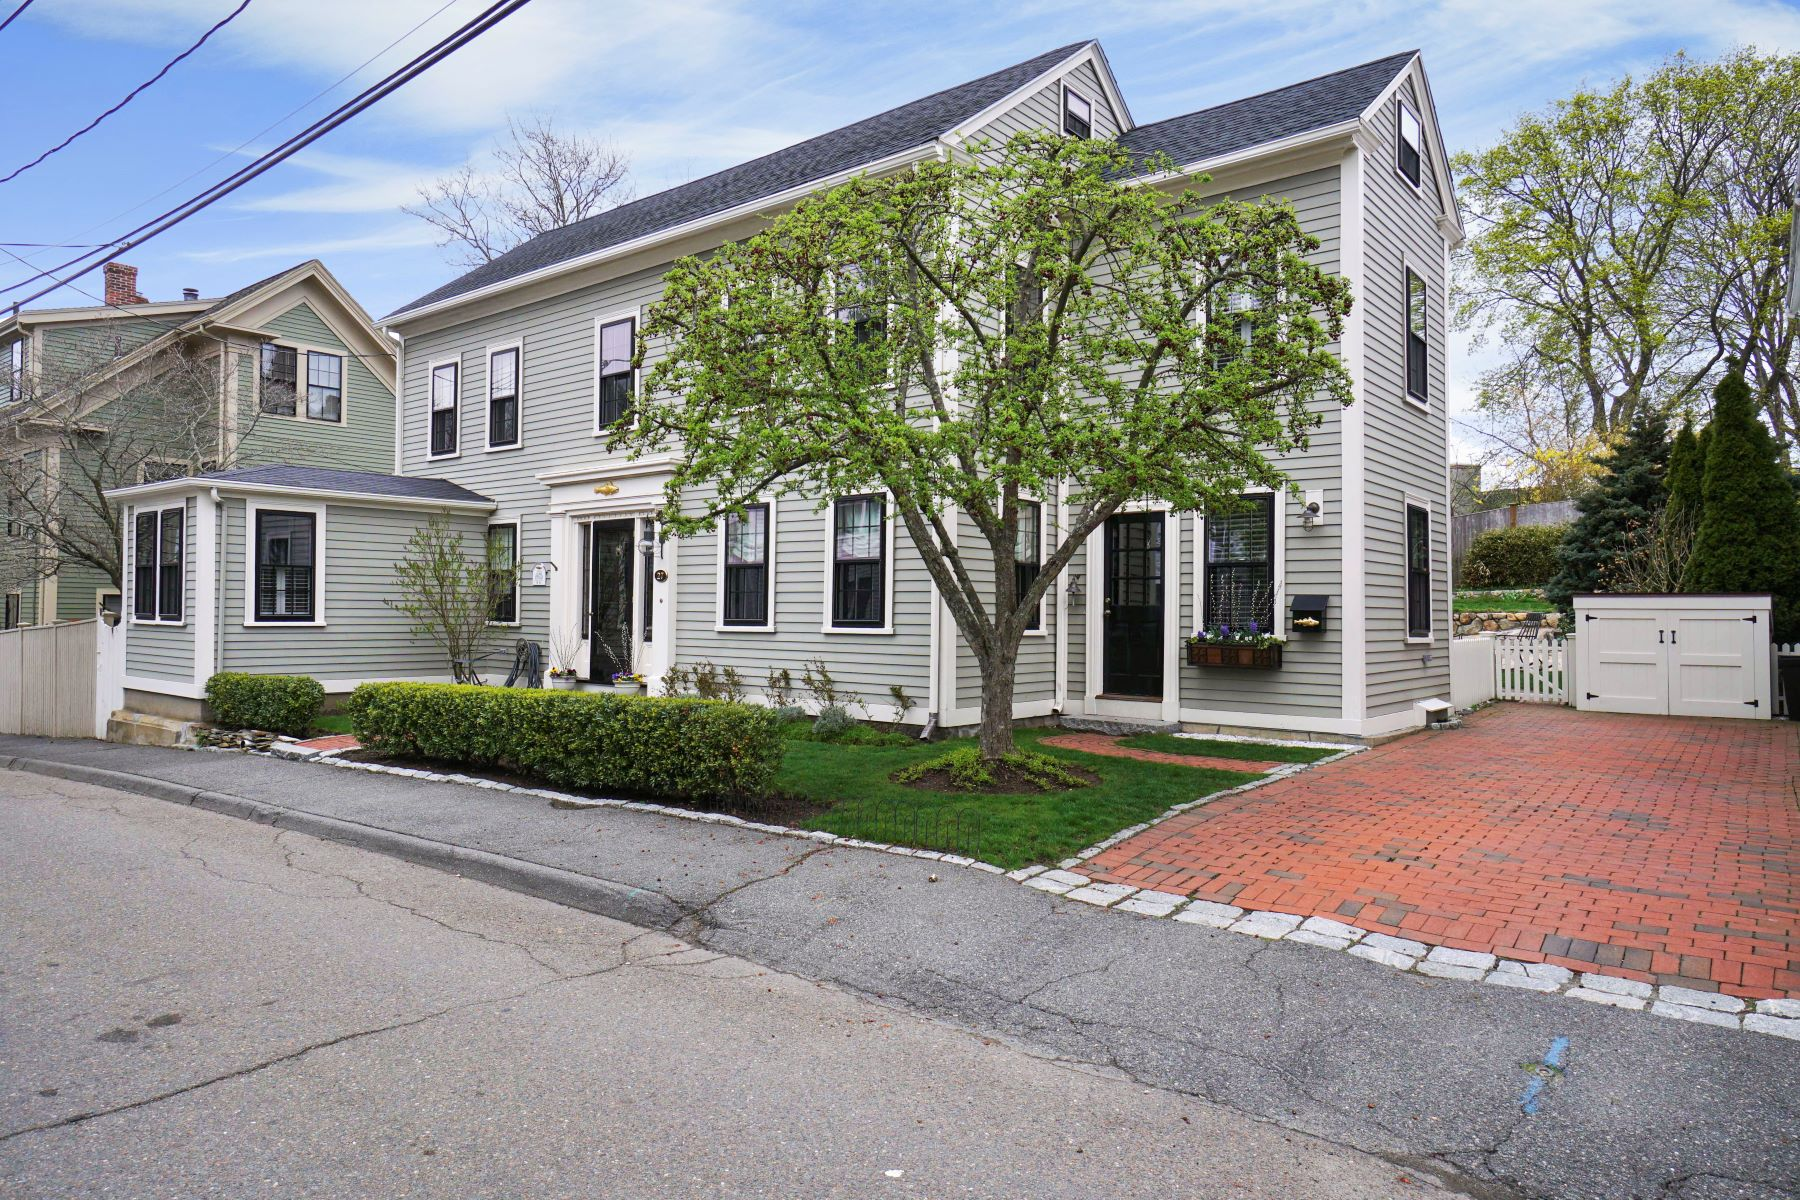 Single Family Home for Active at 27 Pearl St Marblehead, Massachusetts 01945 United States